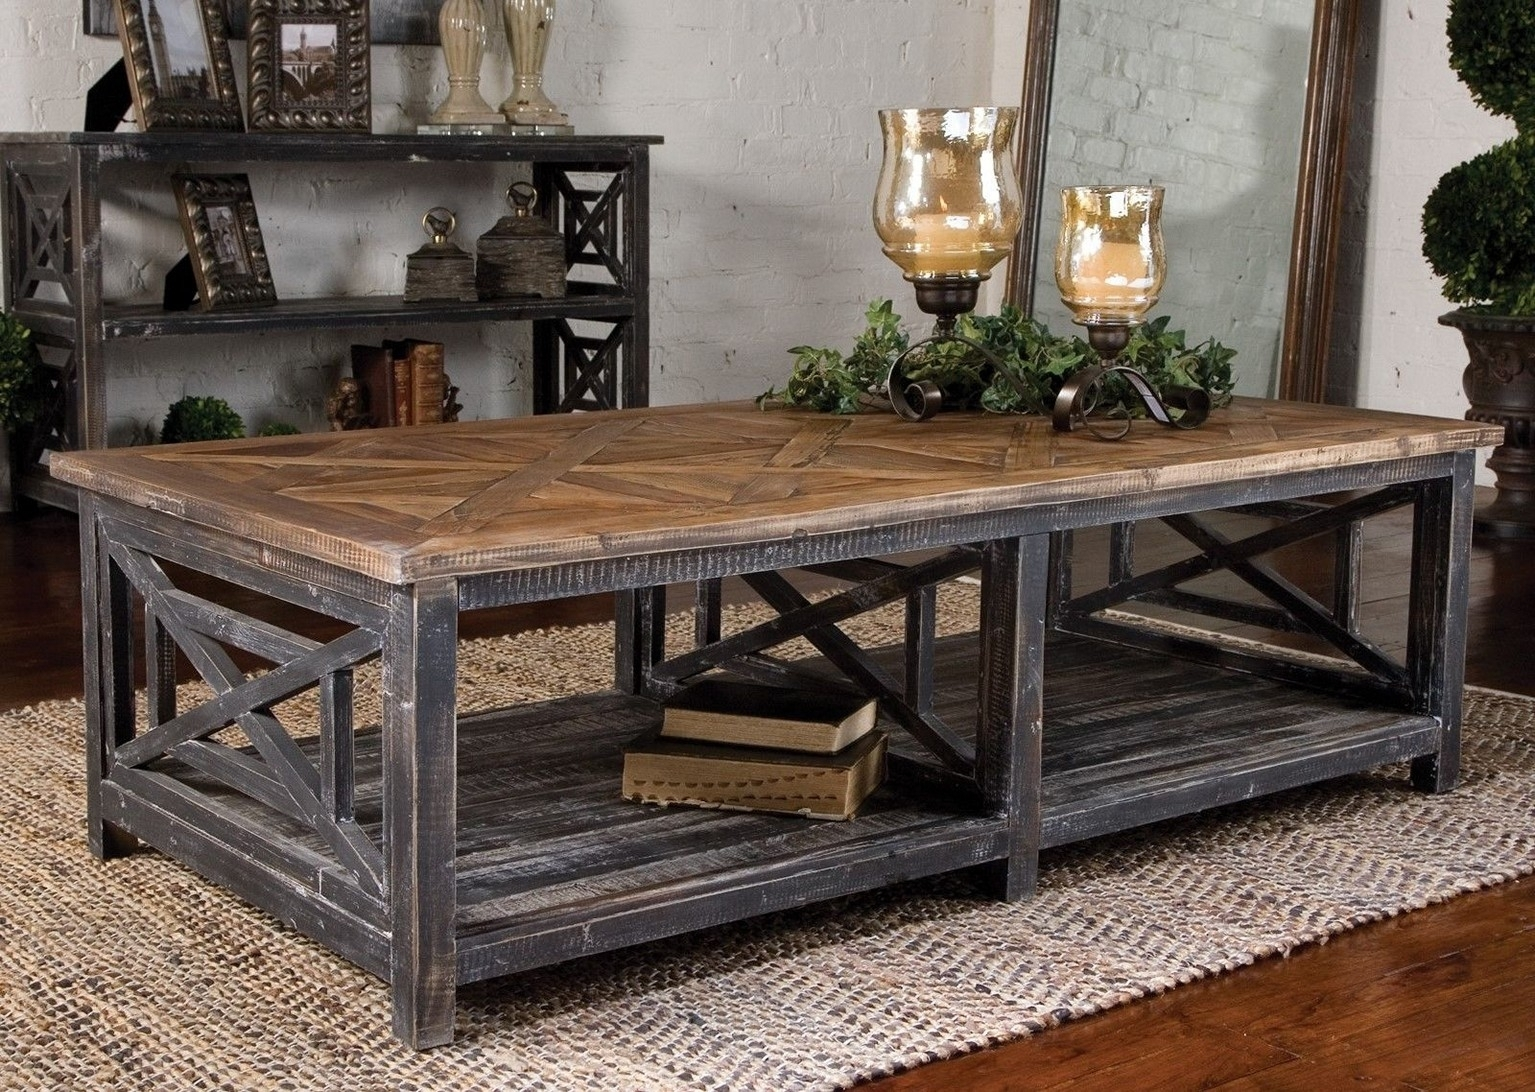 Home Design Ideas Awesome Stunning Rustic Coffee Table Ideas With In Modern Rustic Coffee Tables (View 27 of 30)